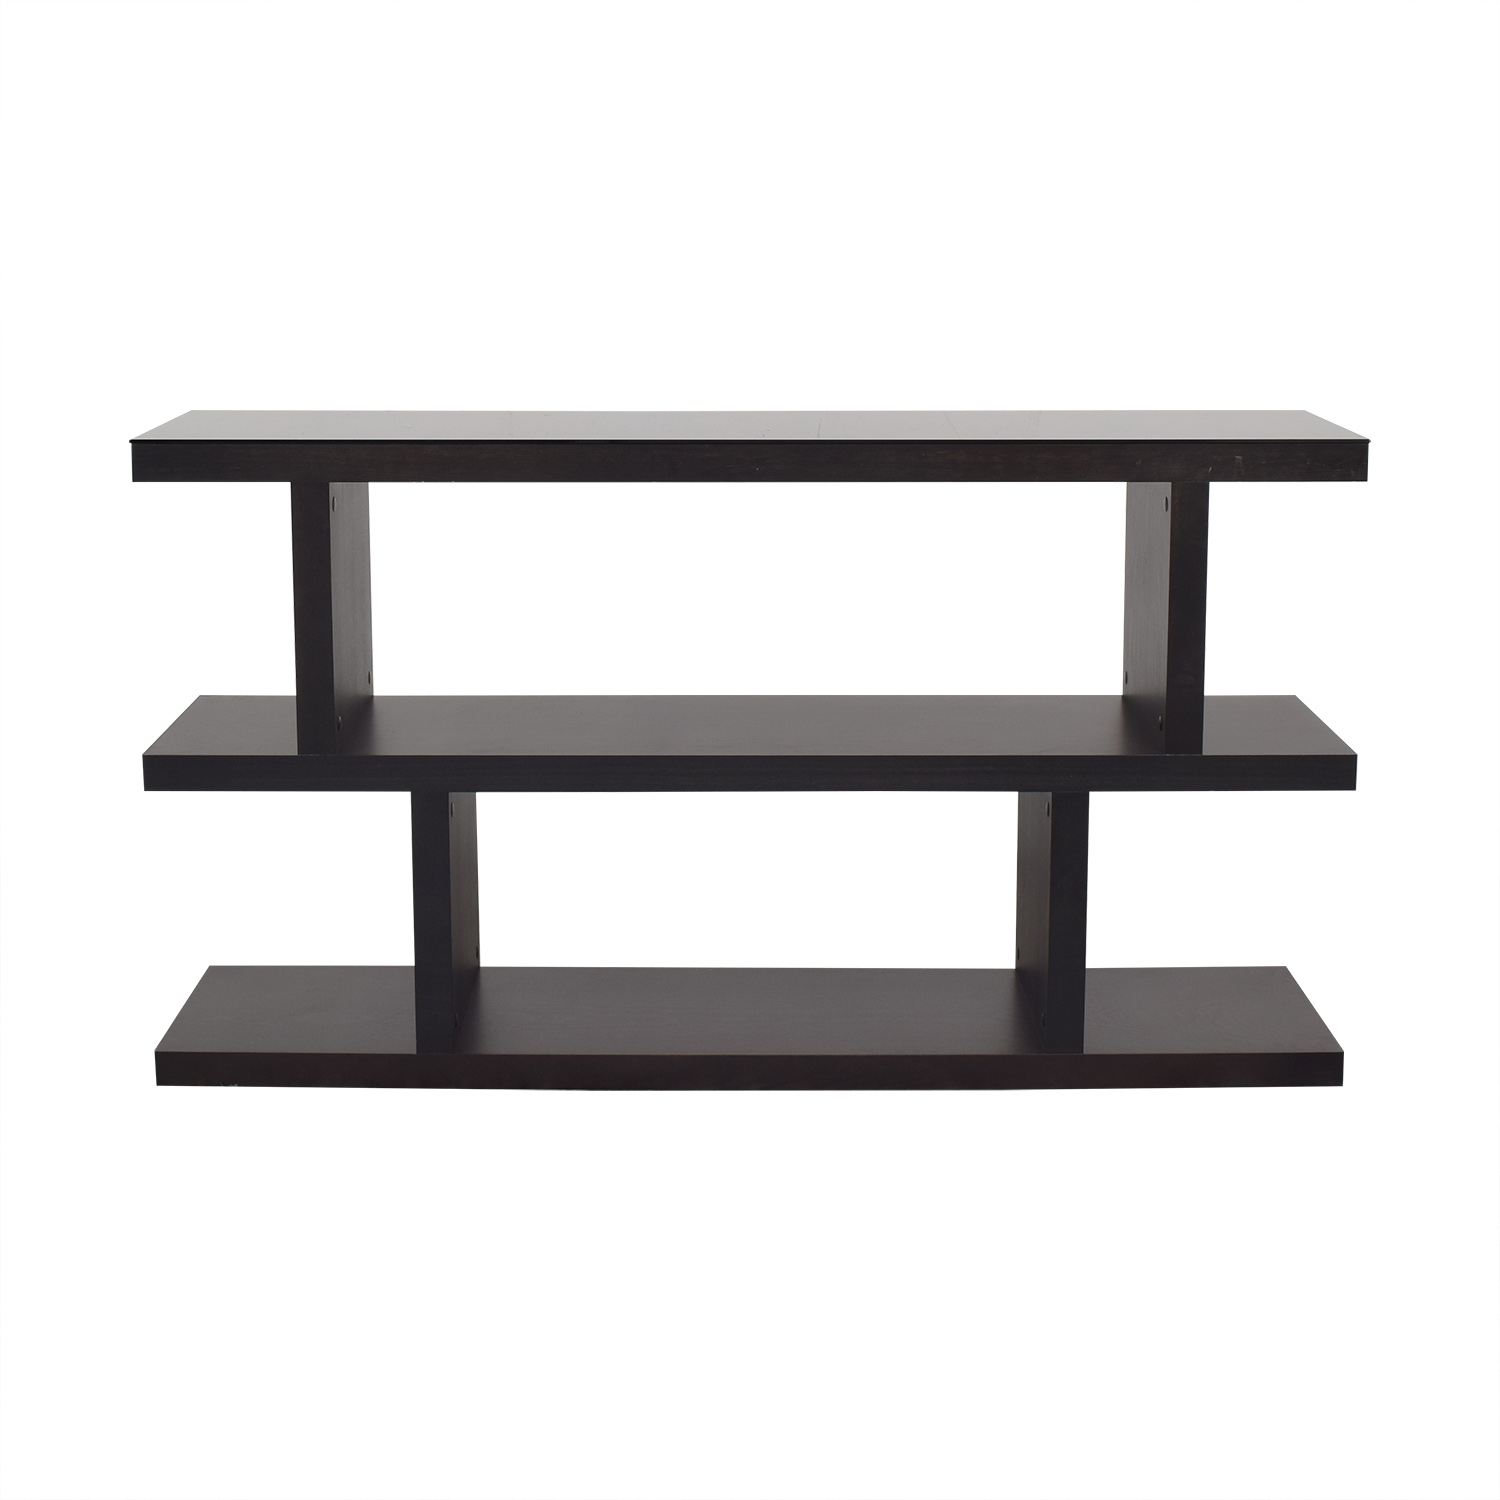 buy Crate & Barrel Crate & Barrel Contemporary Style Two High Shelving Unit online